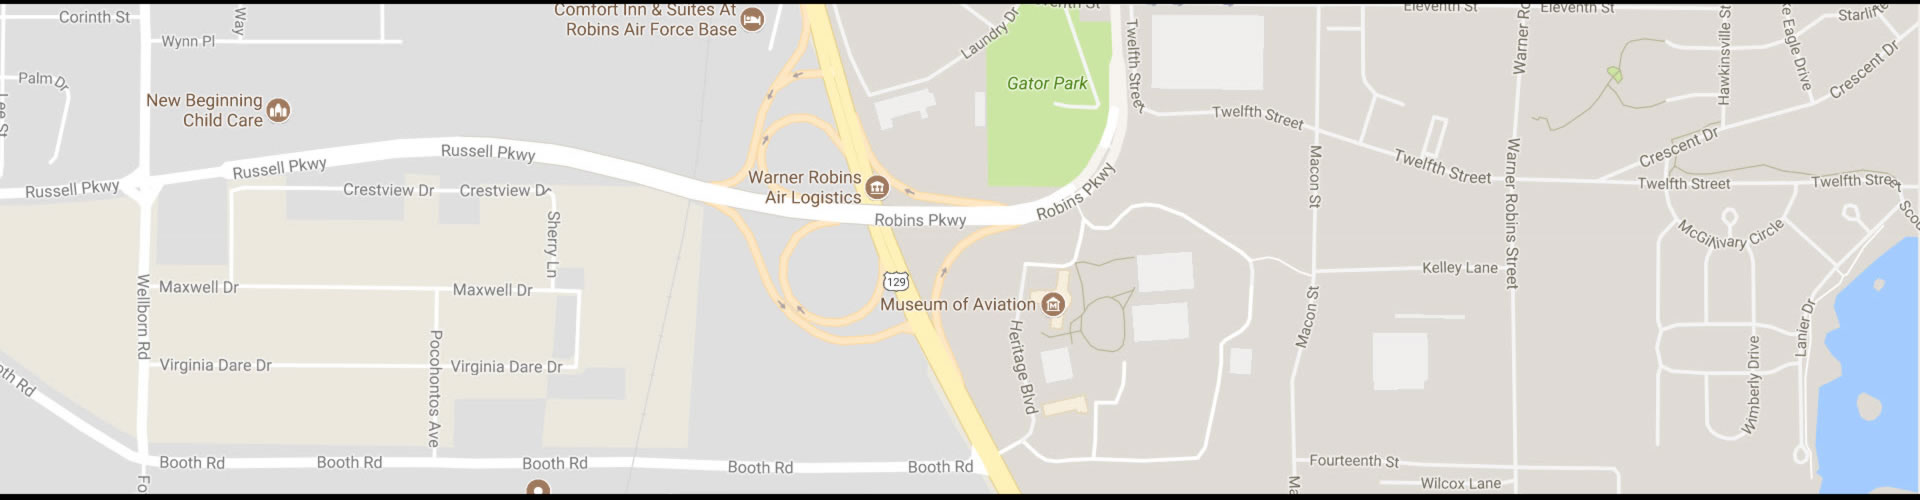 Museum of Aviation Map